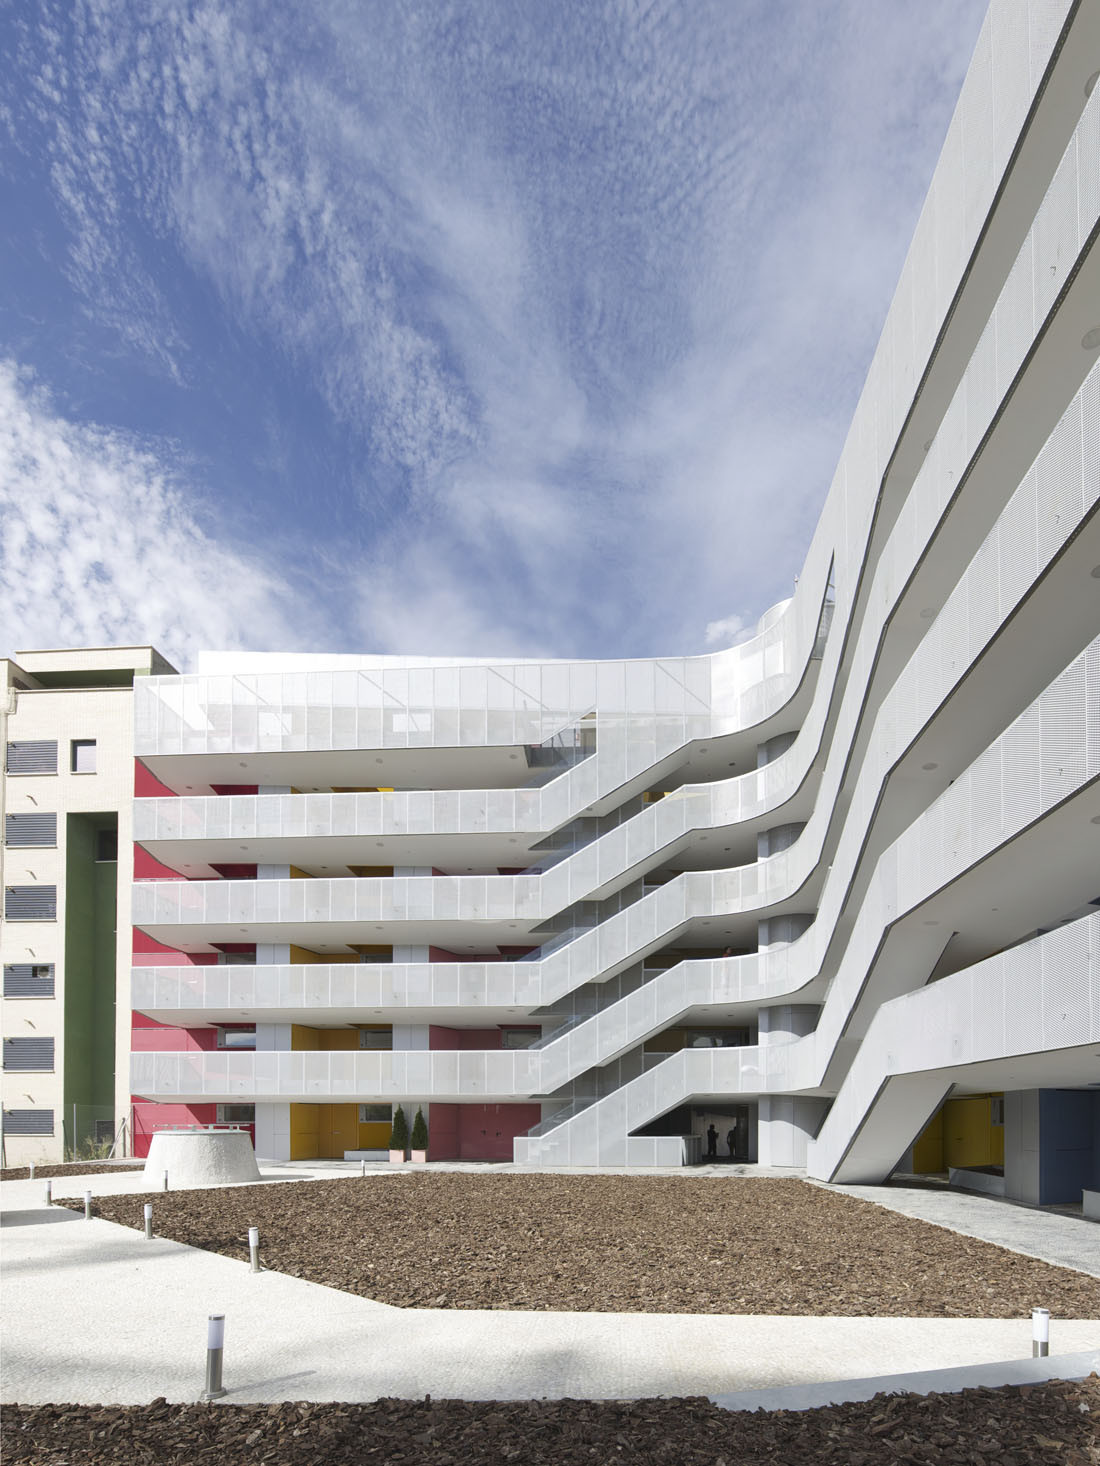 Social Dwellings in Vallecas / Paredes Pino, Courtesy of  paredes pino